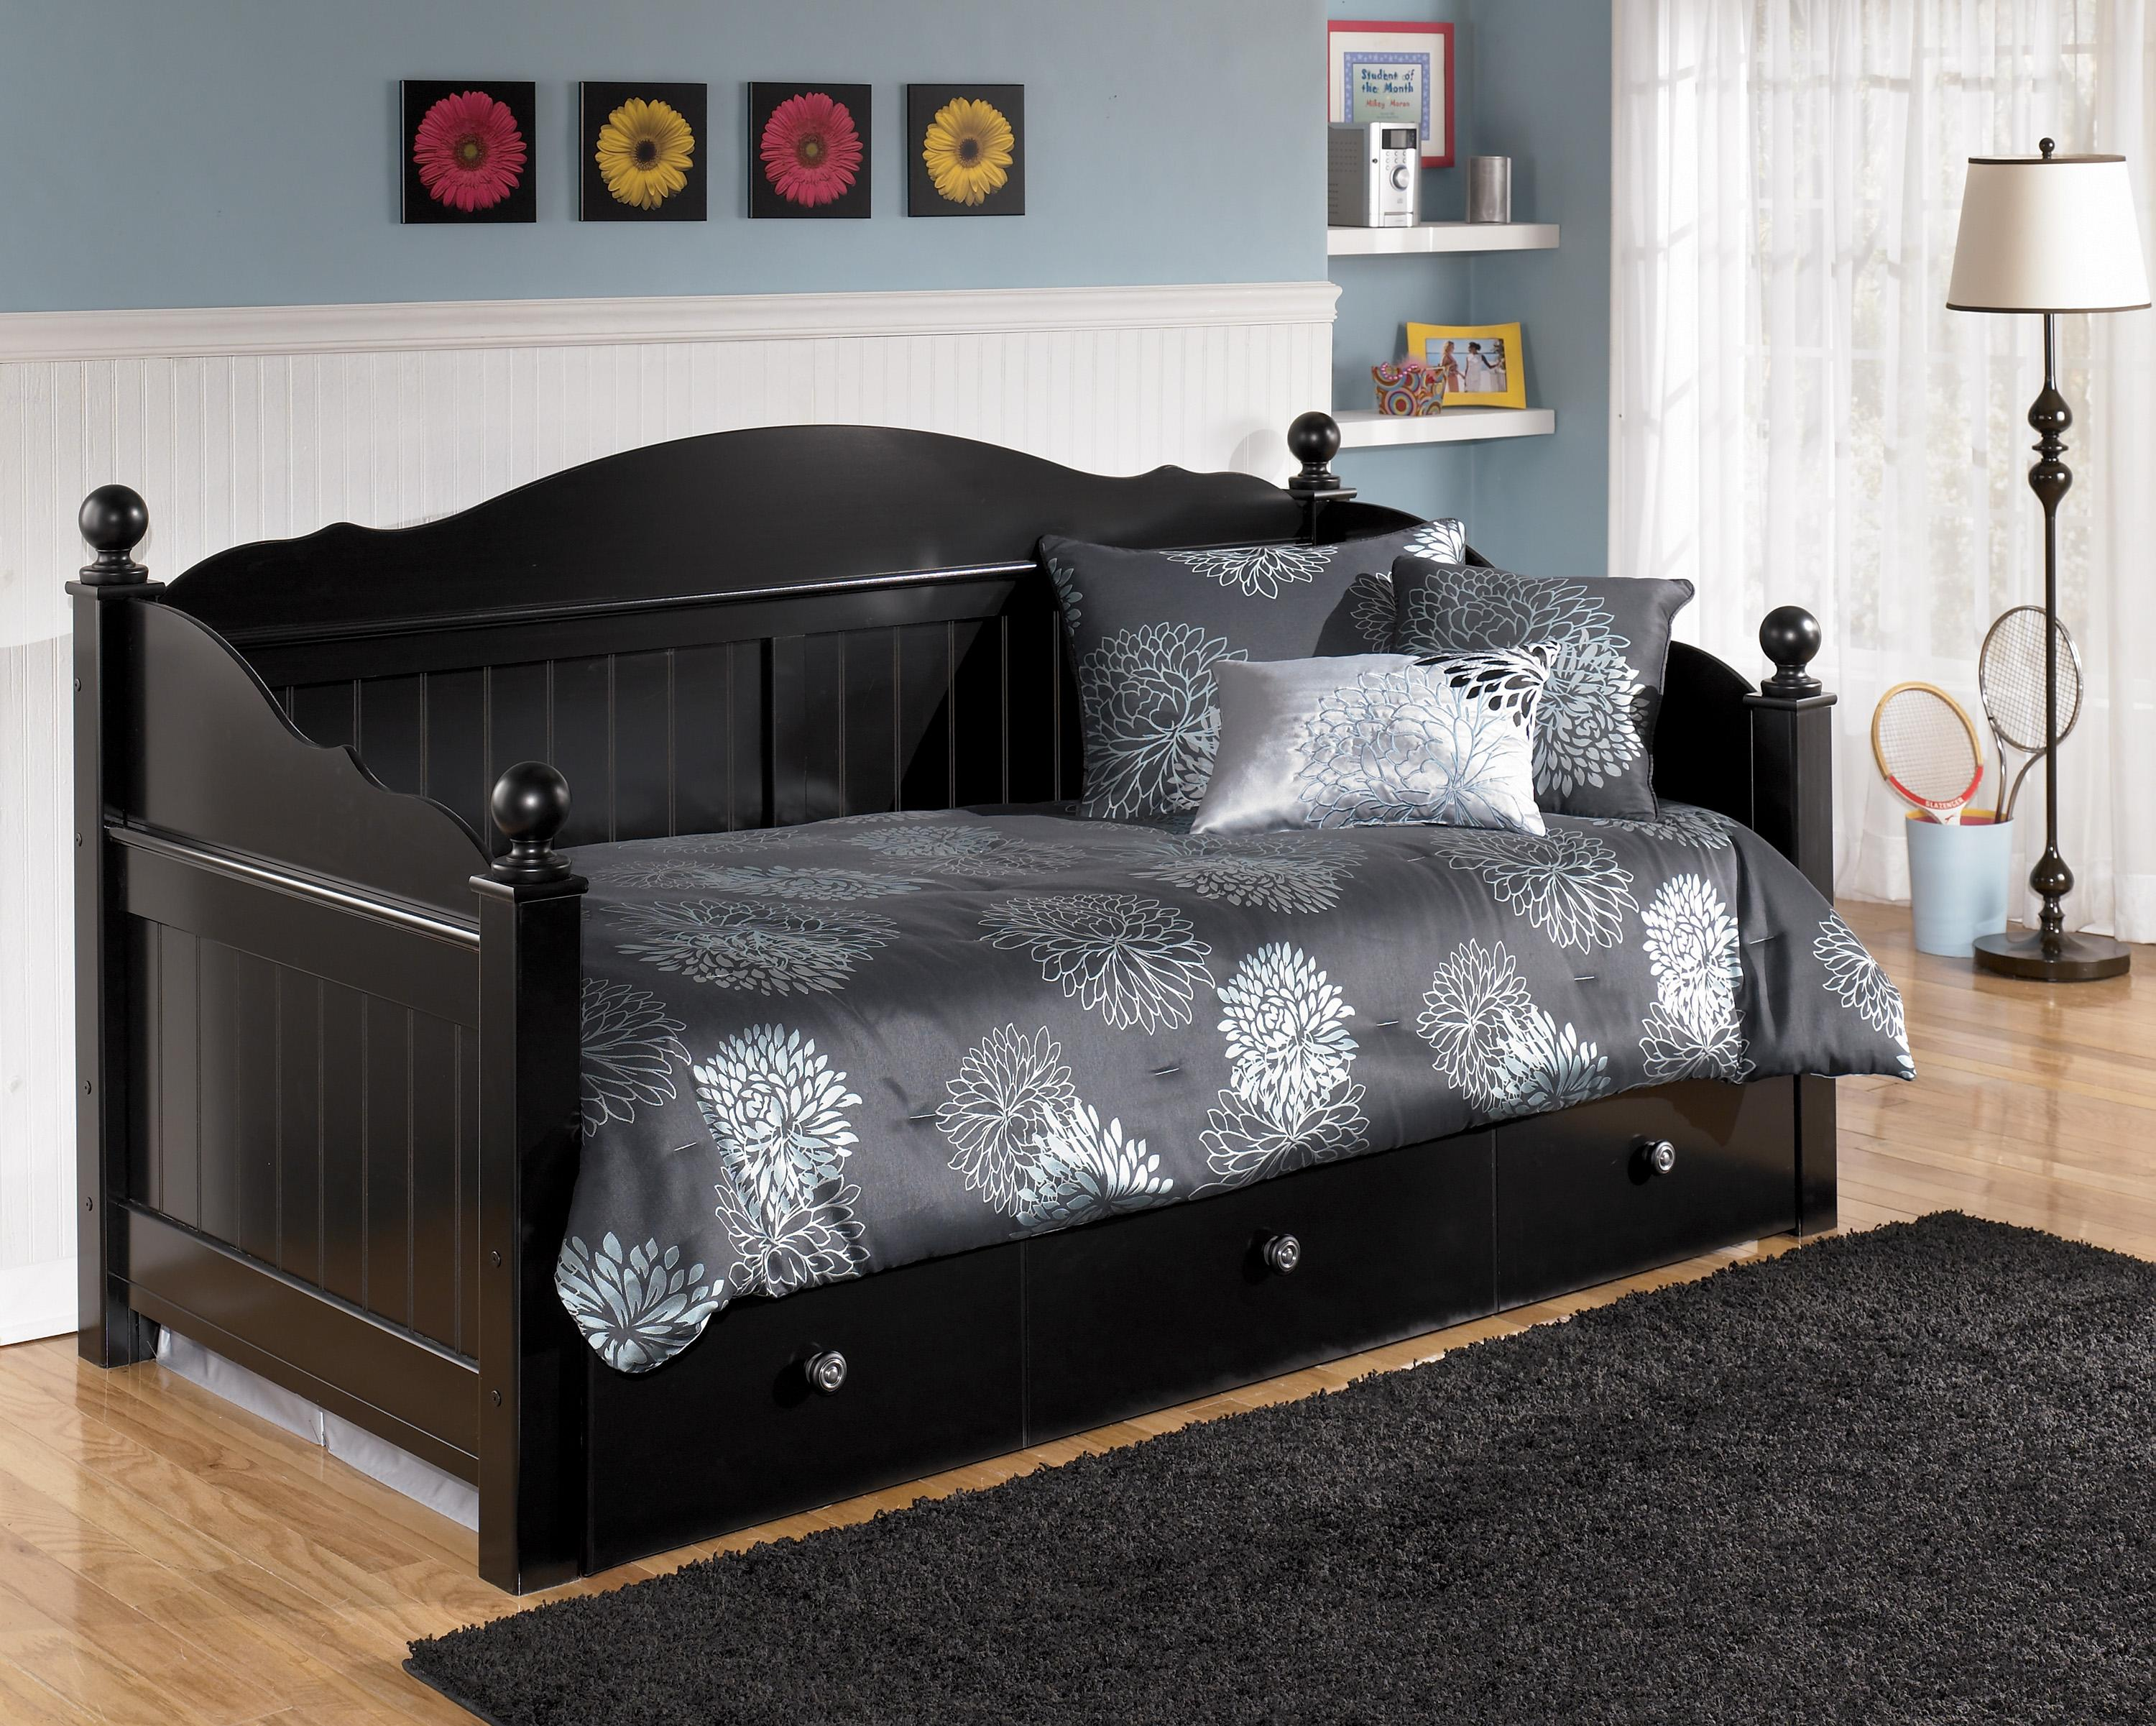 Signature Design by Ashley Jaidyn Day Bed with Trundle Panel - Item Number: B150-80+51+B100-81+B100-82